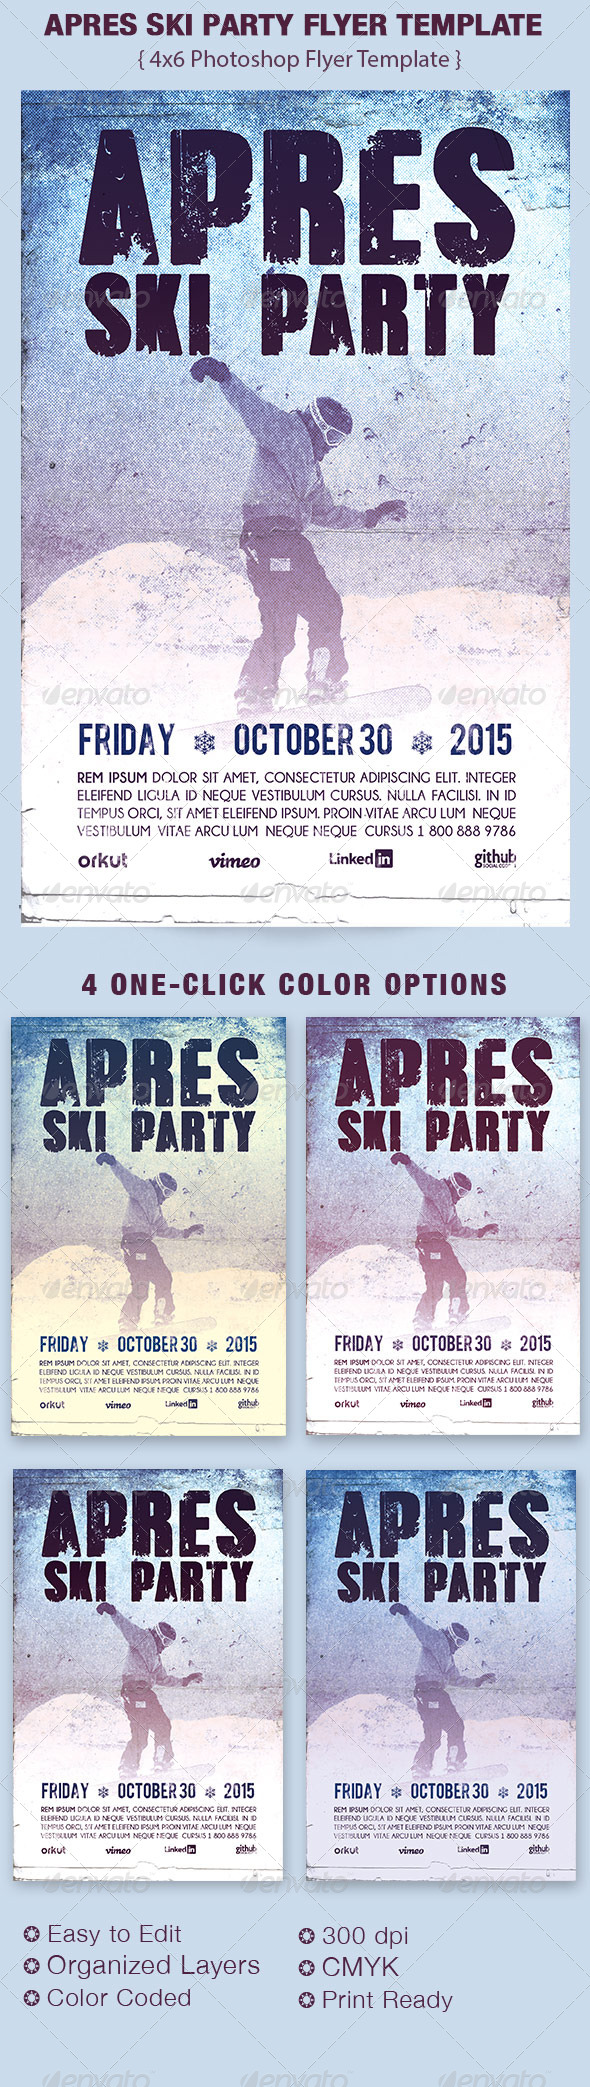 GraphicRiver Apres Ski Party Flyer Template 6246308